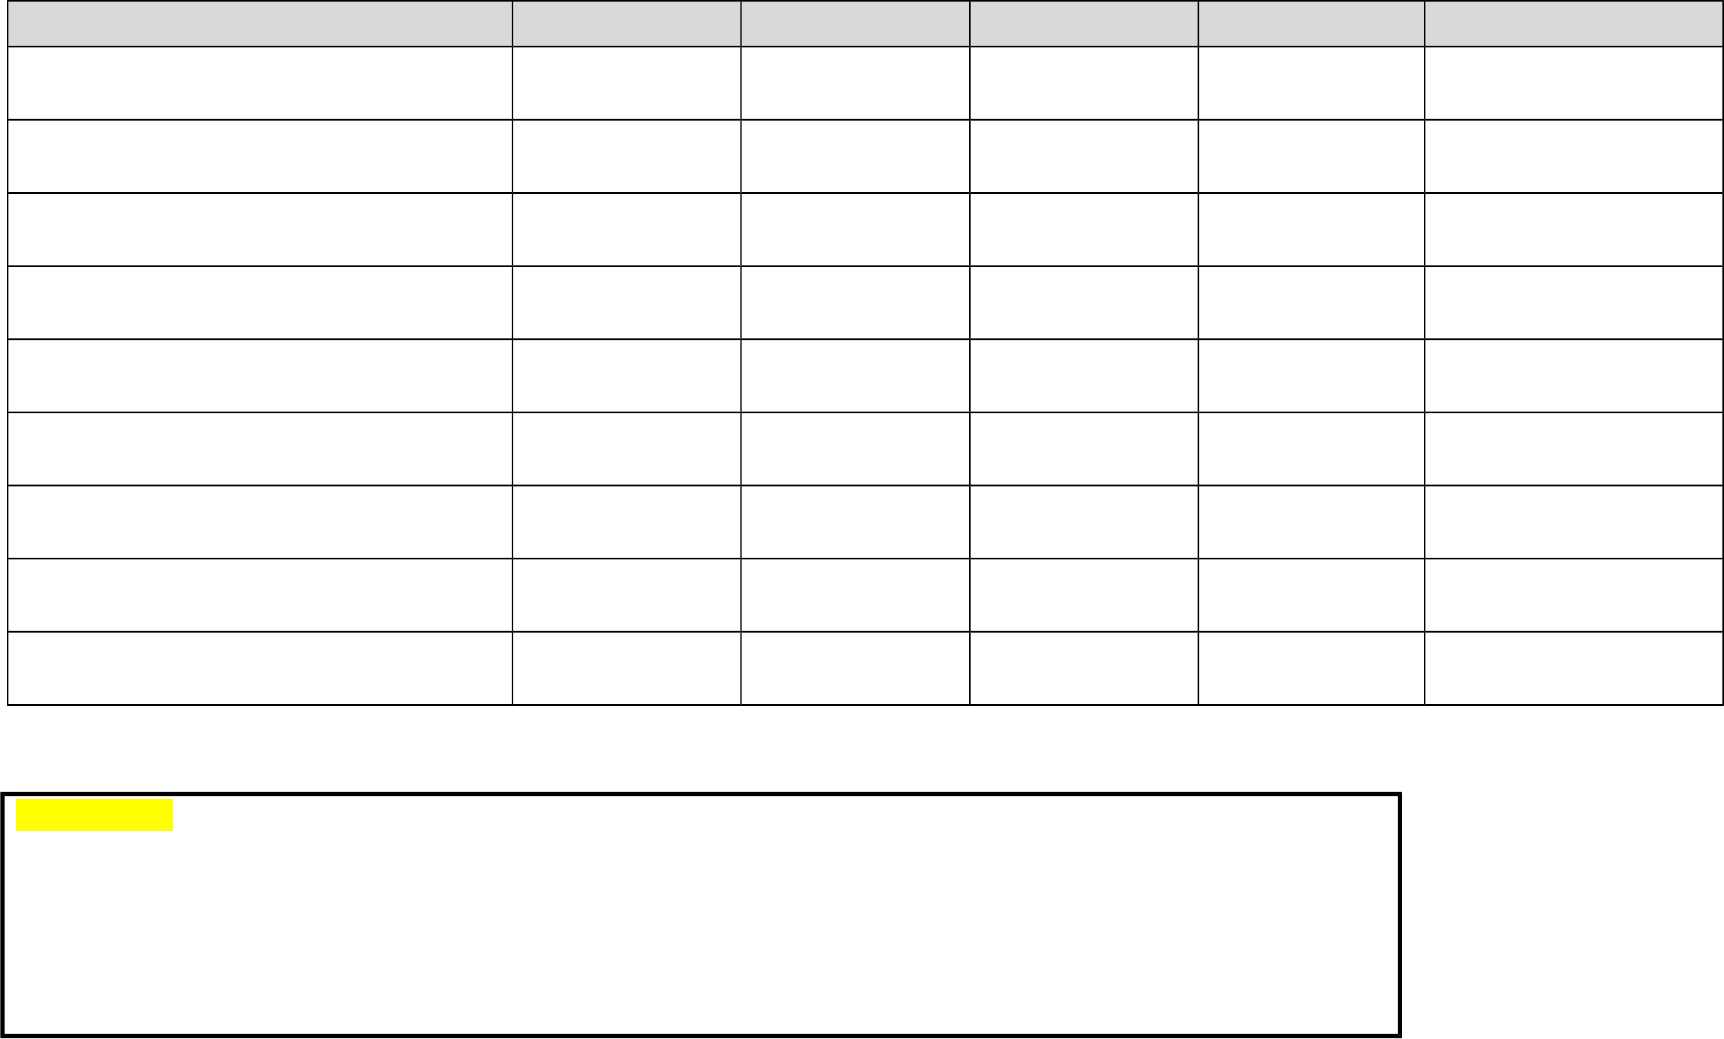 blank picture graph template - blank raci chart template free download